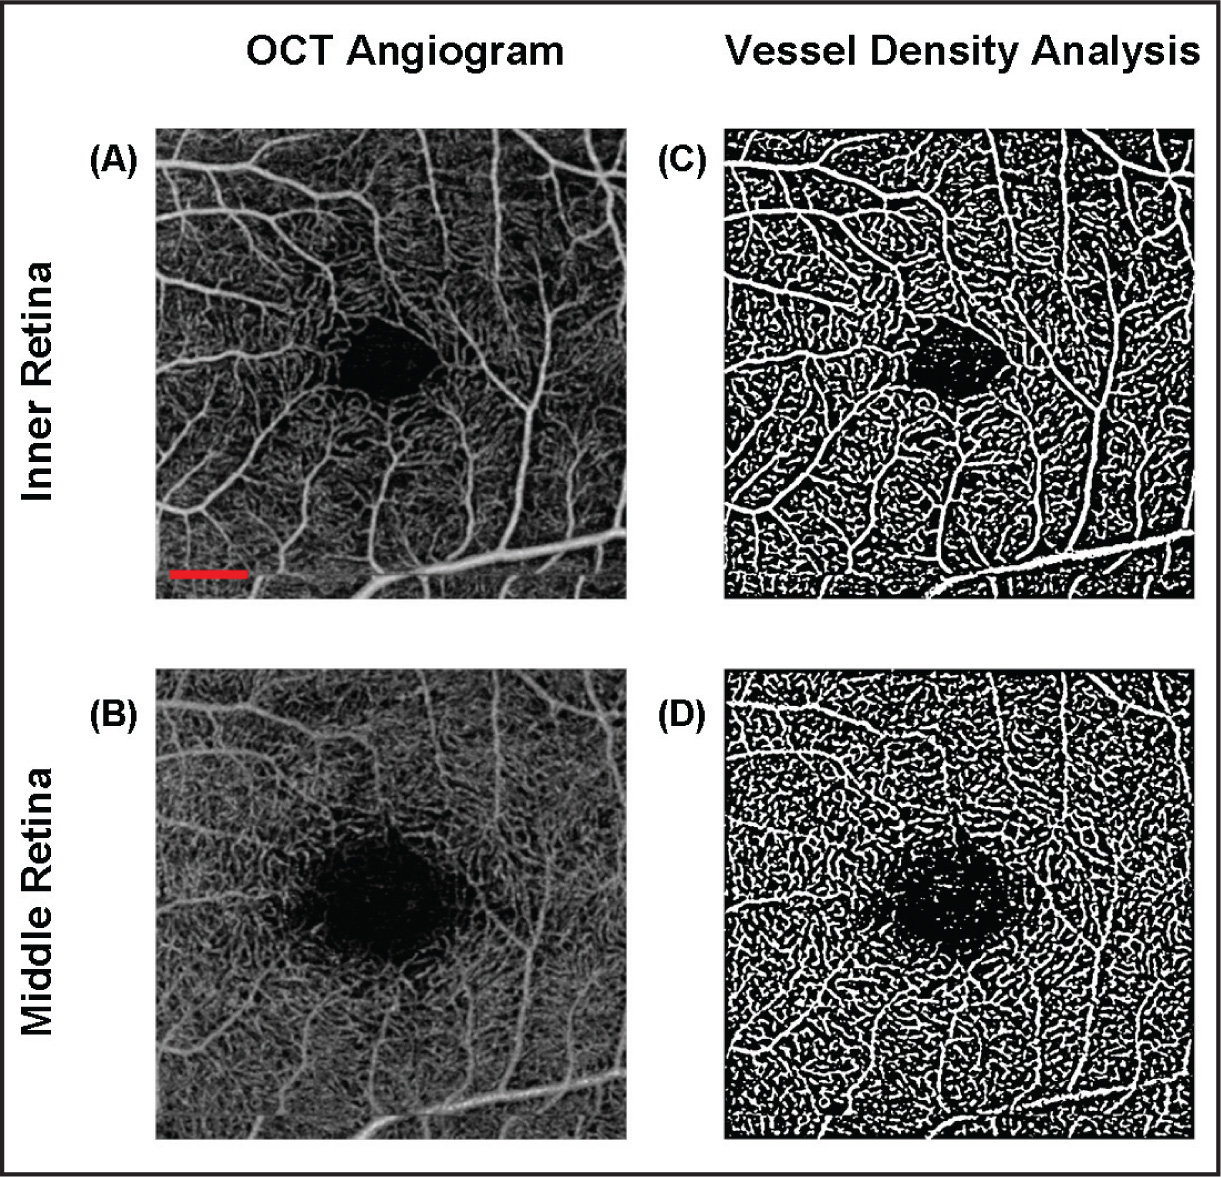 OCT angiogram and vessel density analysis of a 3 × 3 mm2 area centered on the fovea of a healthy subject. En face representation of the retinal vessels in the (A) inner retinal layer and (B) middle retinal layer. (C,D) Contrast enhanced images of the respective retinal regions in (A) and (B). (C) Vessel density analysis of the inner retina showed an average total density of 31.68% ± 1.15%. (D) Vessel density analysis of the middle retina showed an average total density of 30.86% ± 1.20%. The scale bar in (A) shows a distance of 500 µm. This scale applies to (A–D).